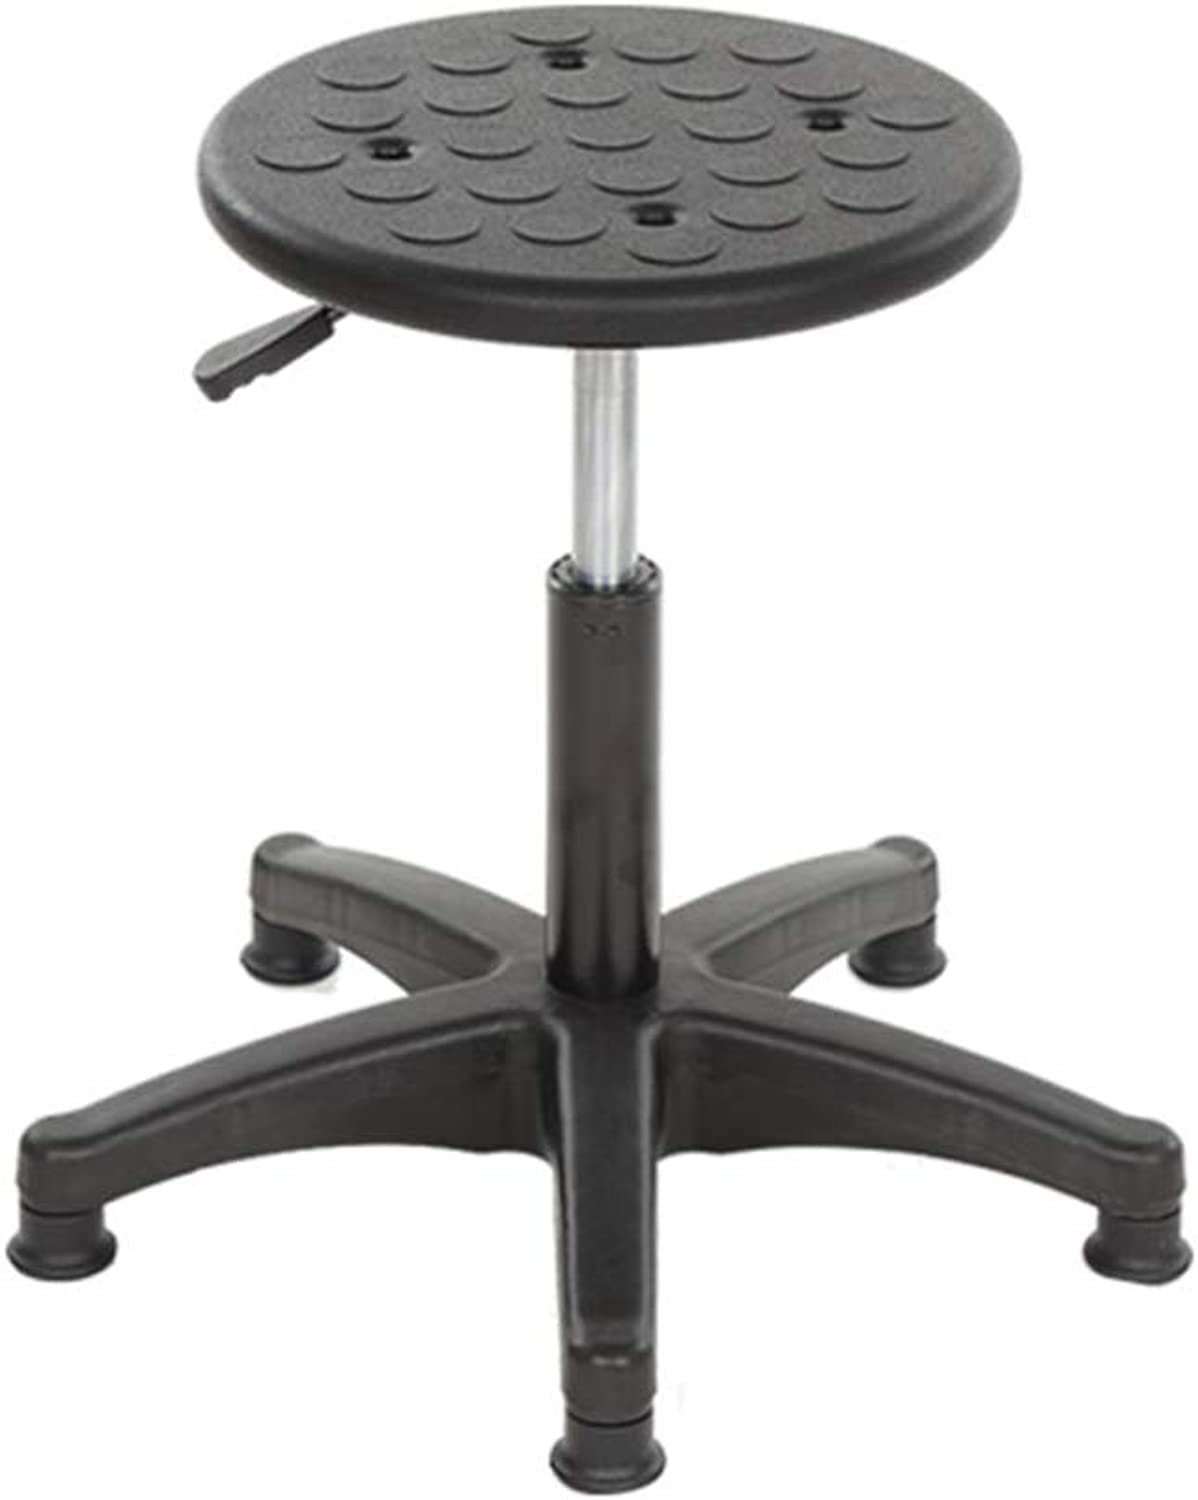 ZHAOYONGLI Stool Footstool Laboratory Anti-Static Lifting Work Roumd Stool Bar Chair Factory Workshop Assembly Pulley Stool Creative Solid Durable Long Lasting (color   Foot Cup)